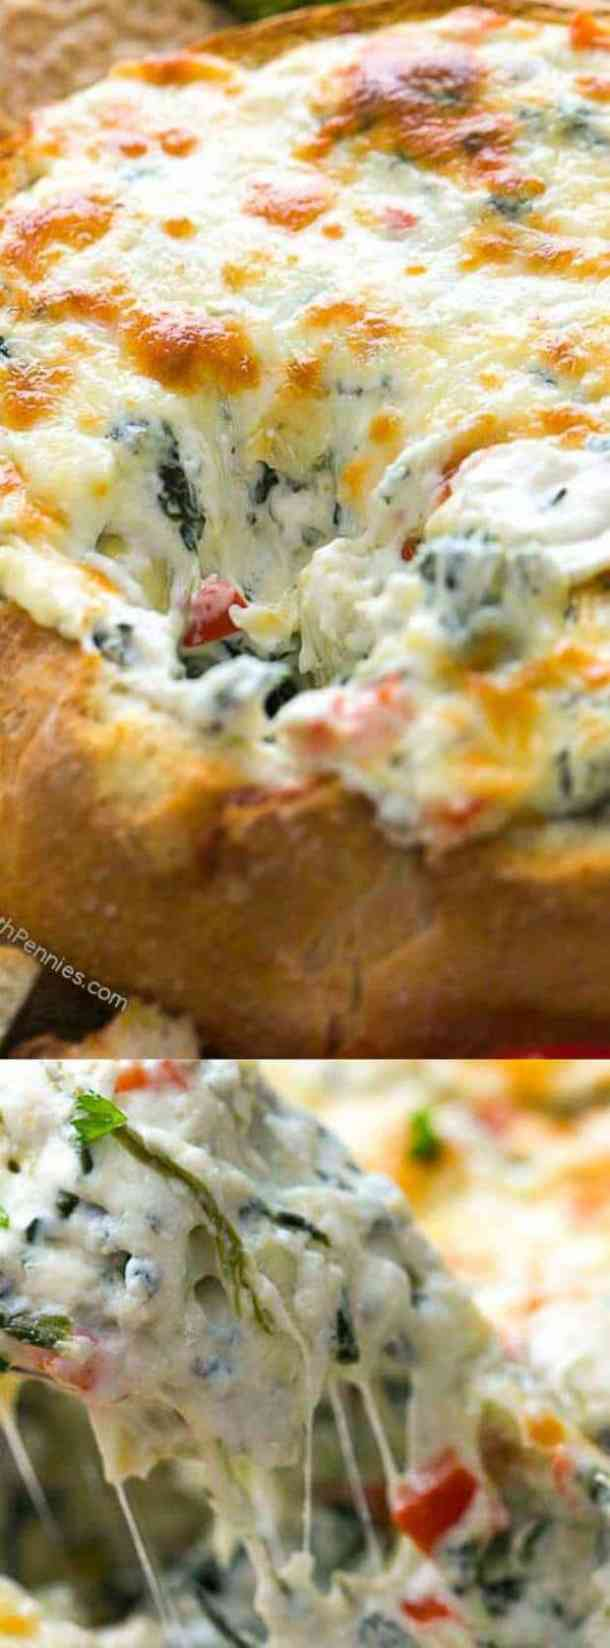 Hot Spinach and Artichoke Dip in a bowl